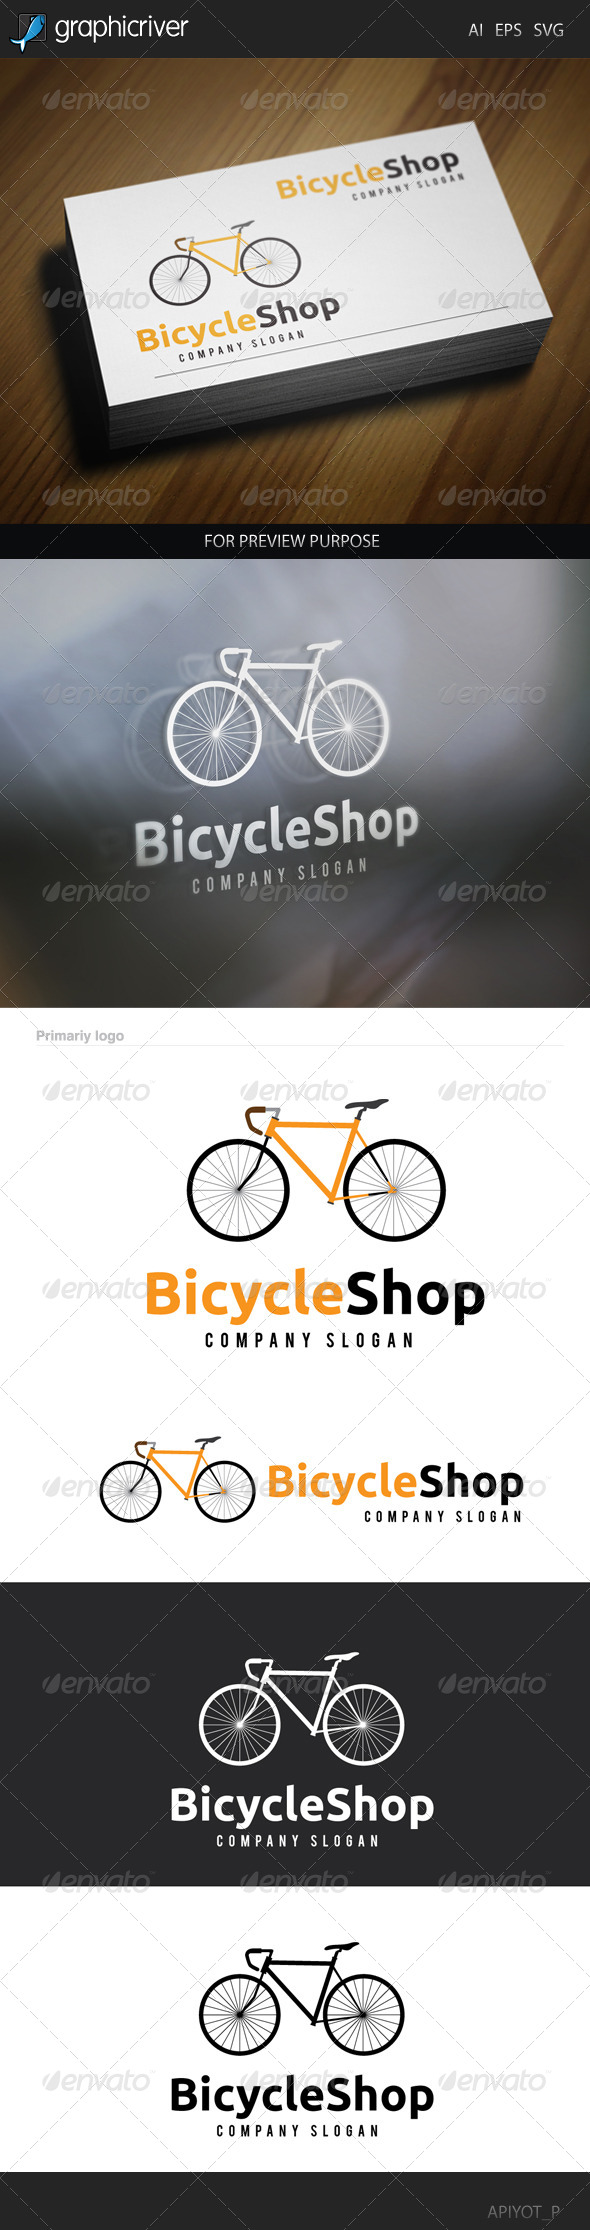 GraphicRiver Bicycle Shop Logo 8565530